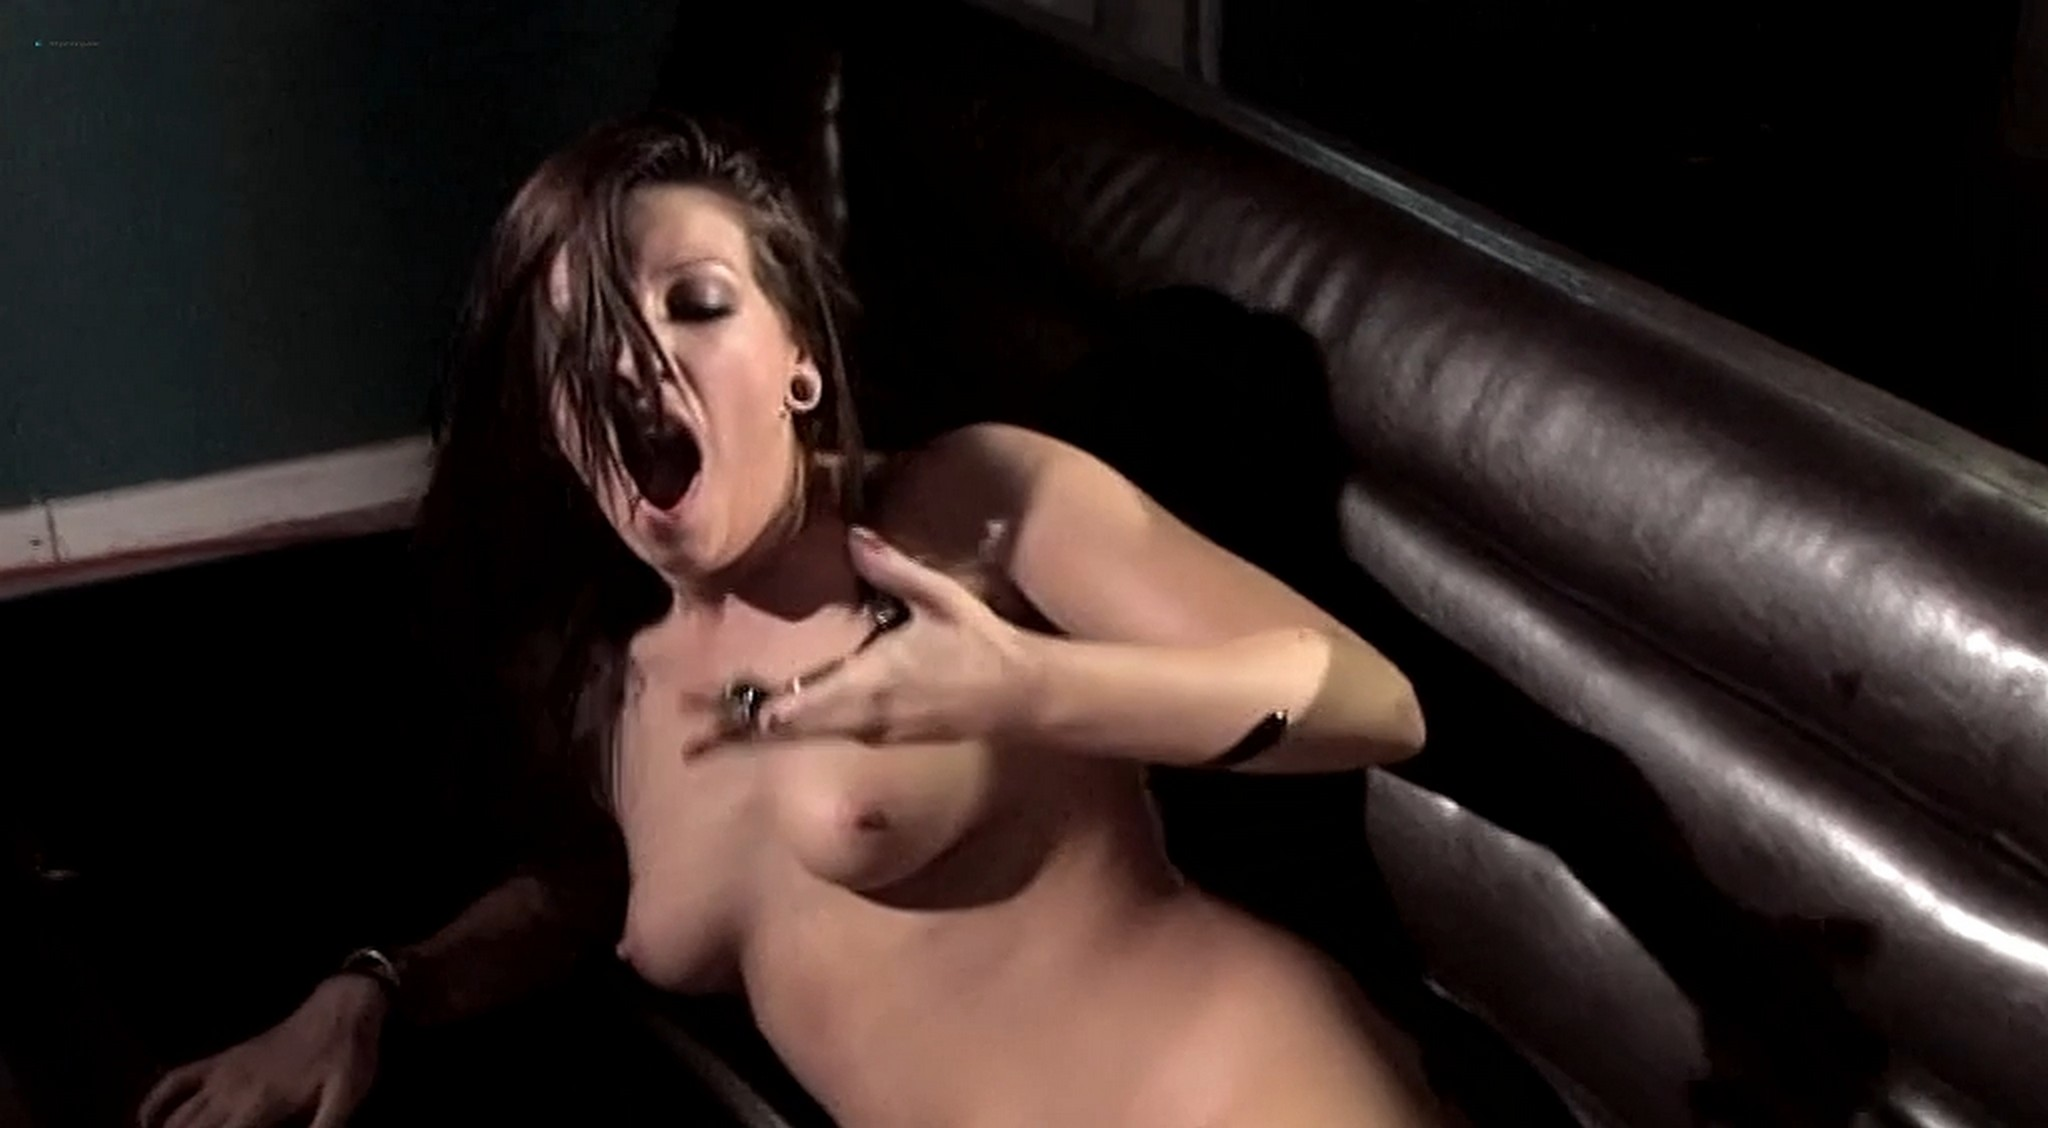 Victoria De Mare nude Roxy DeVille and others nude sex too Bio Slime 2010 DVDRip 18